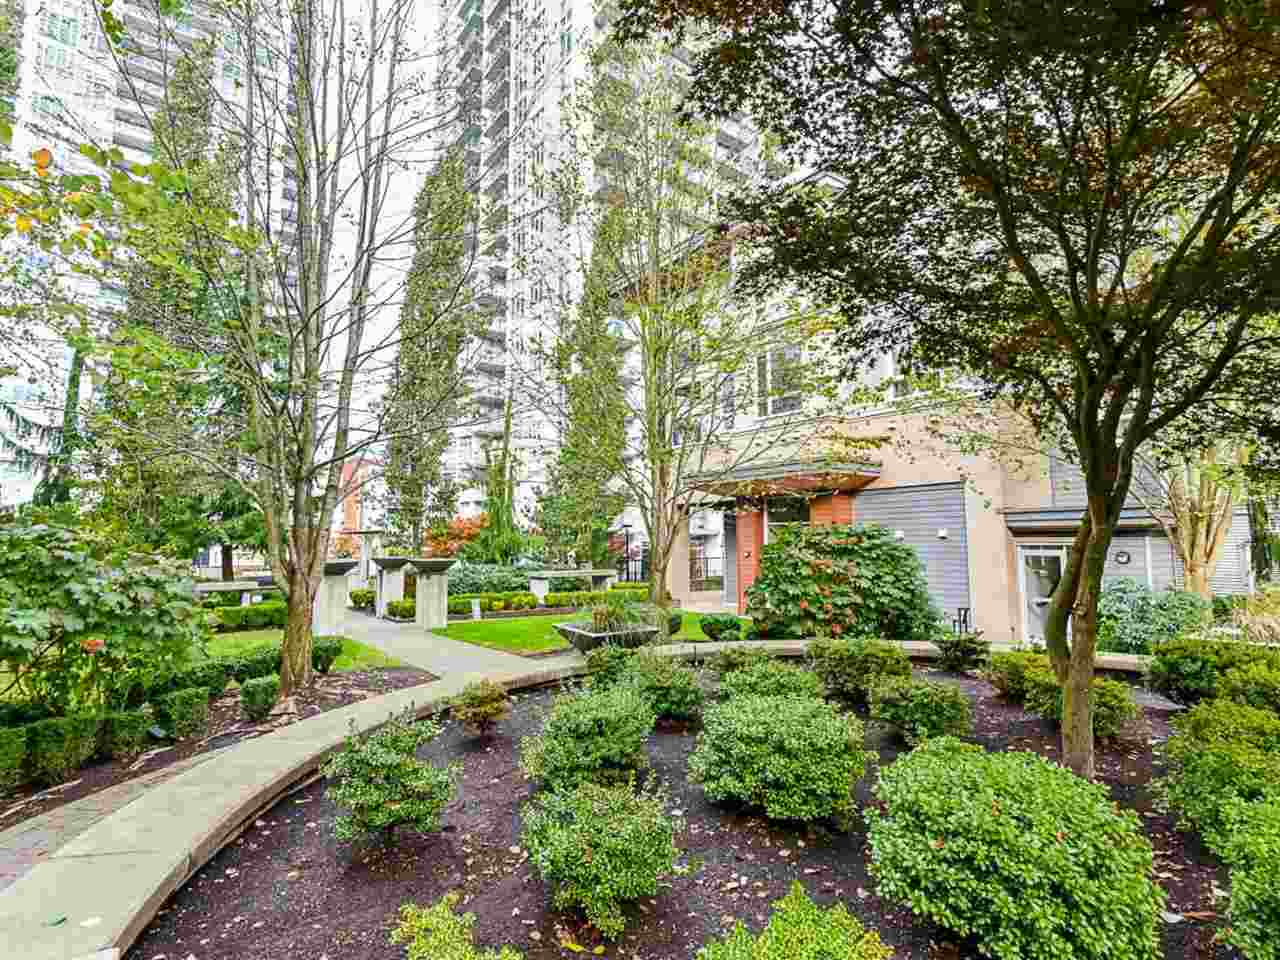 329 13321 102A AVENUE - Whalley Apartment/Condo for sale, 1 Bedroom (R2508611) - #18